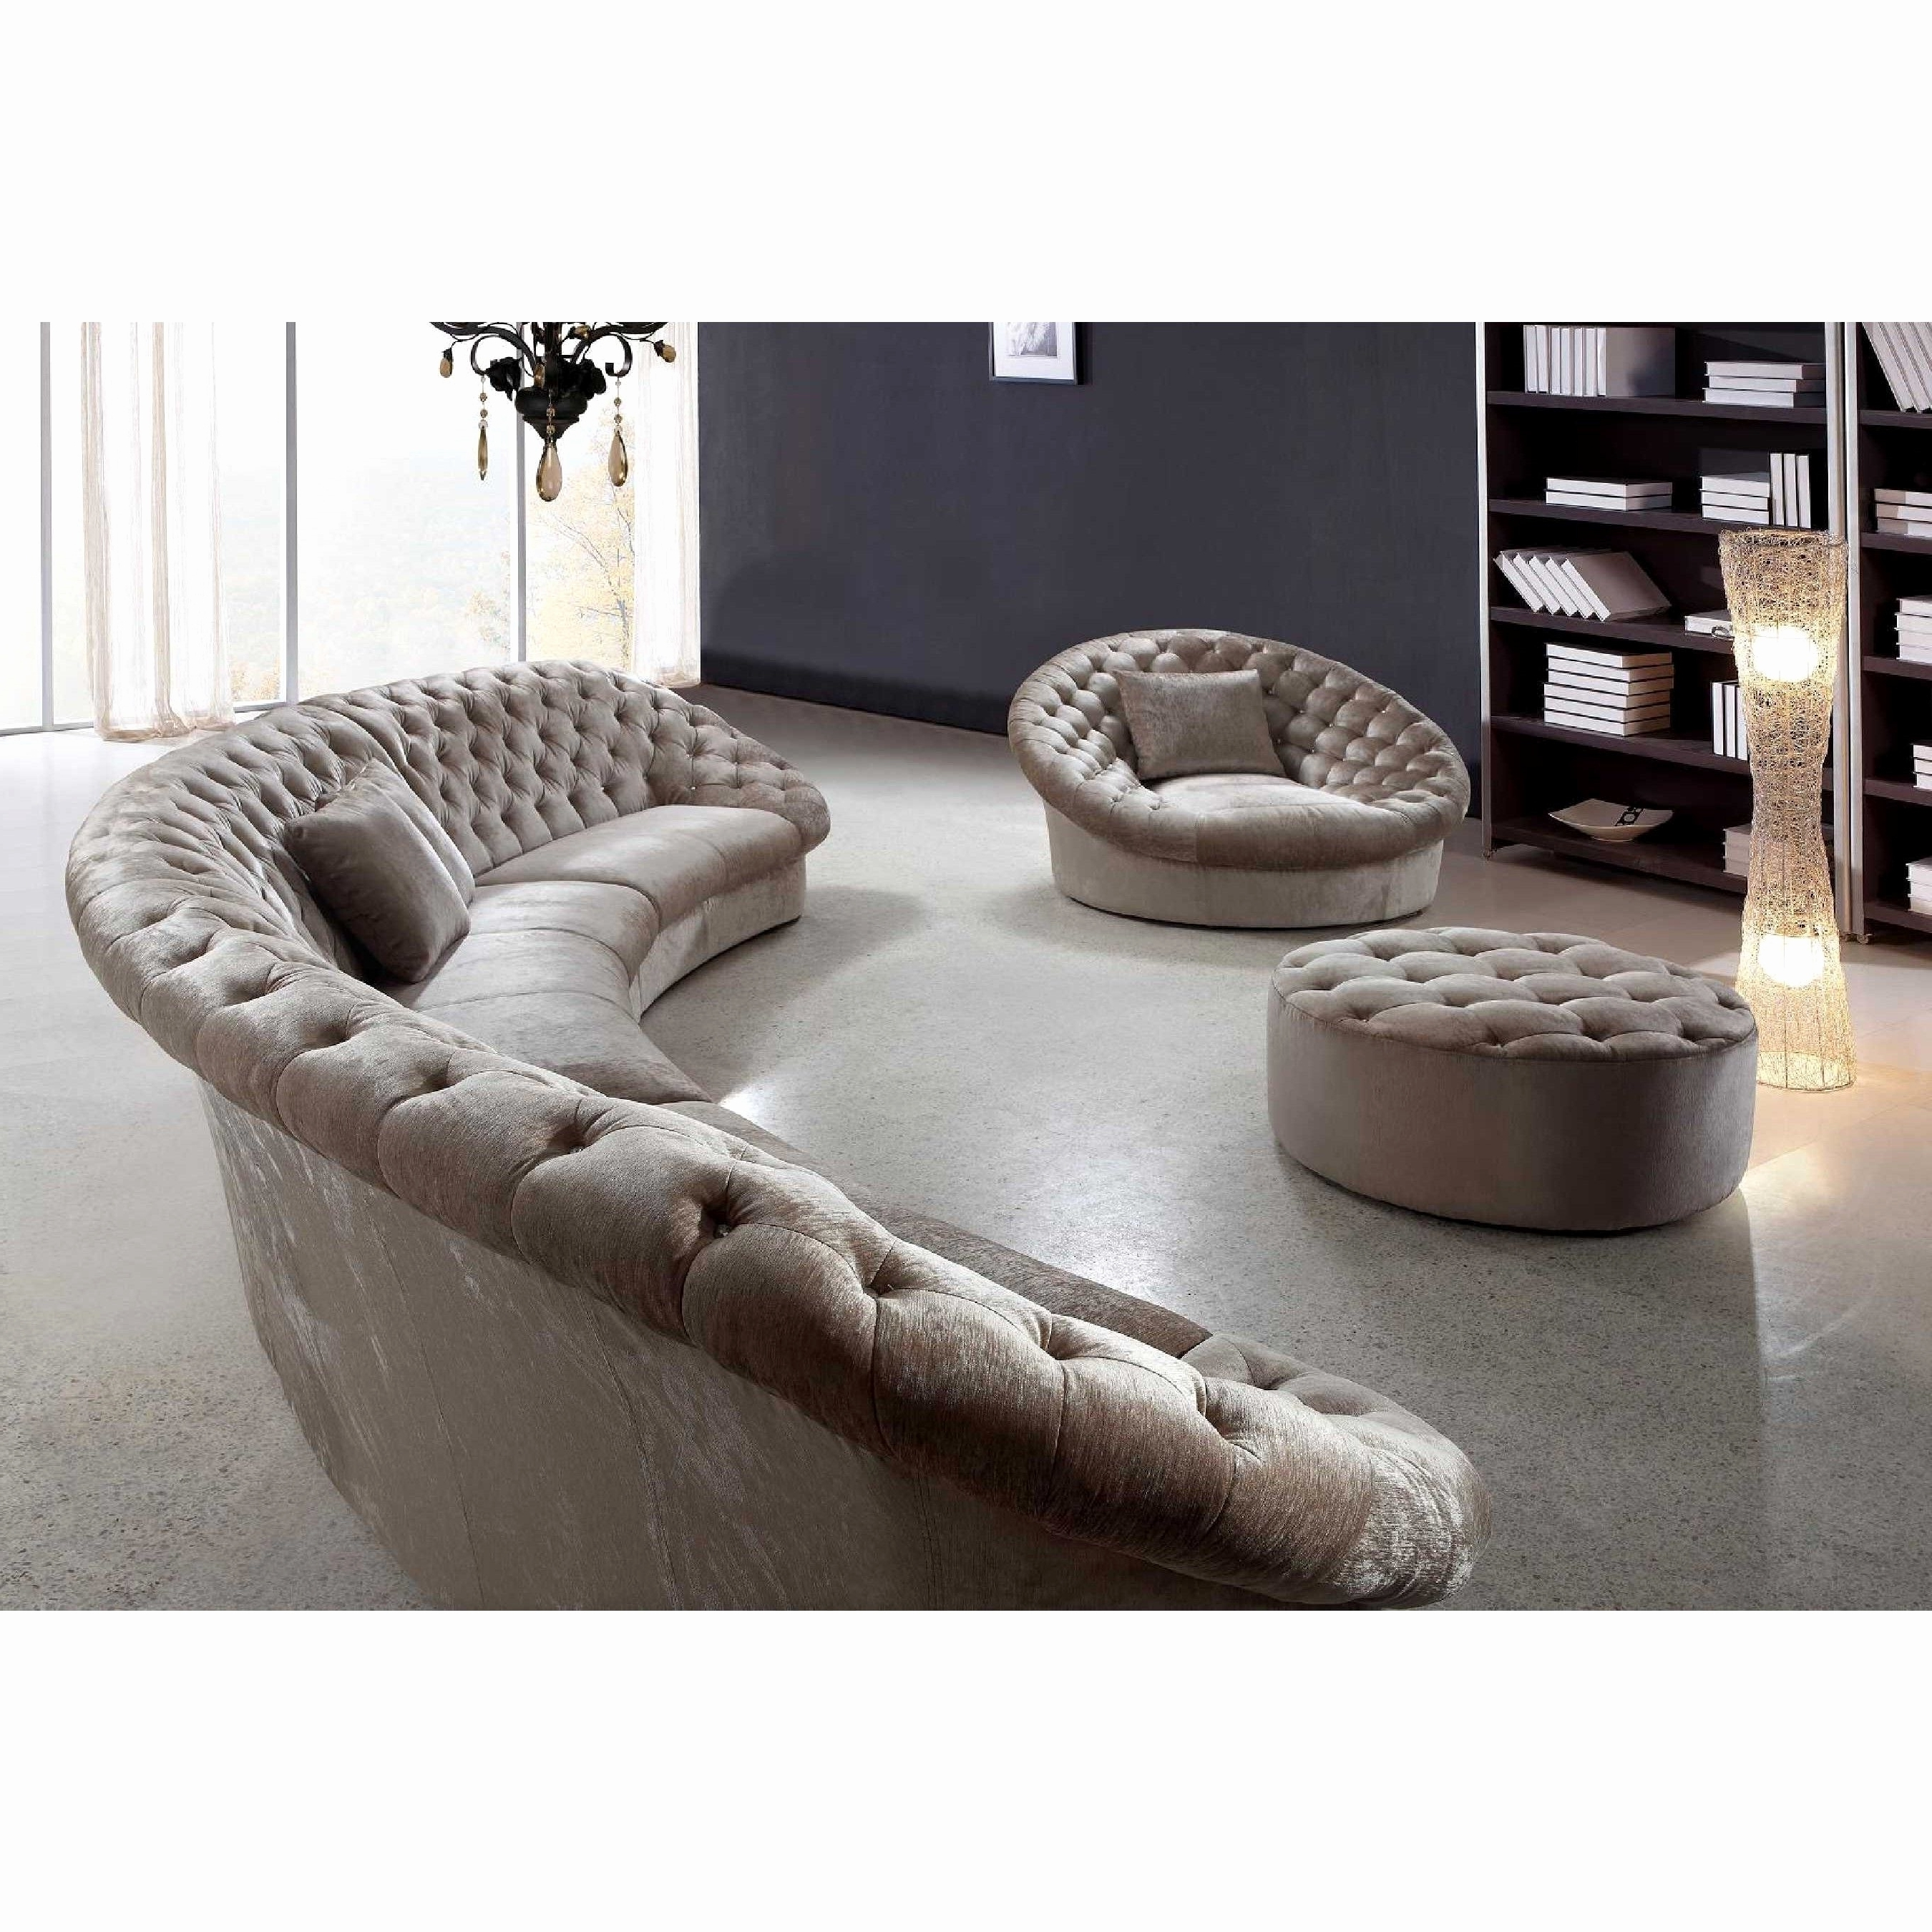 Unique Tufted Back Sectional Sofa 2018 – Couches And Sofas Ideas With Well Liked Tufted Sofas With Chaise (View 13 of 15)